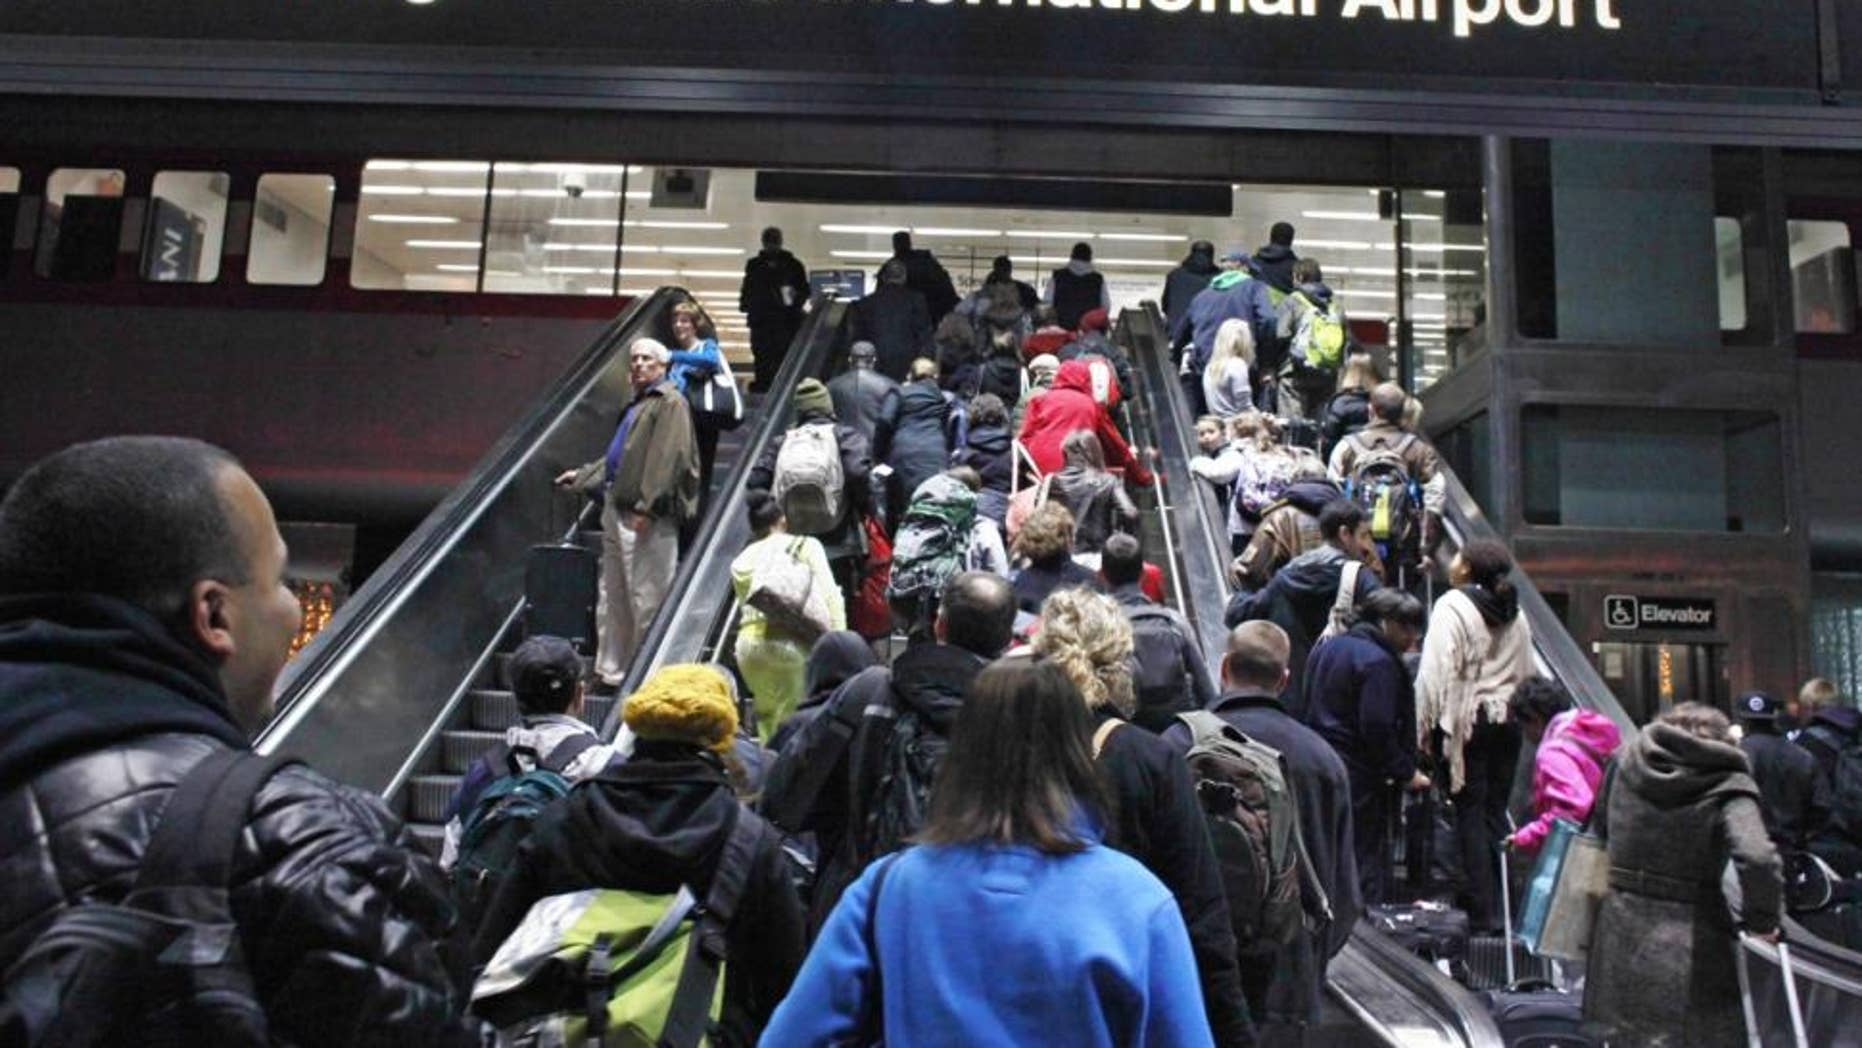 Thousands were stranded over the holiday season due to flight cancellations at Chicago O'Hare.